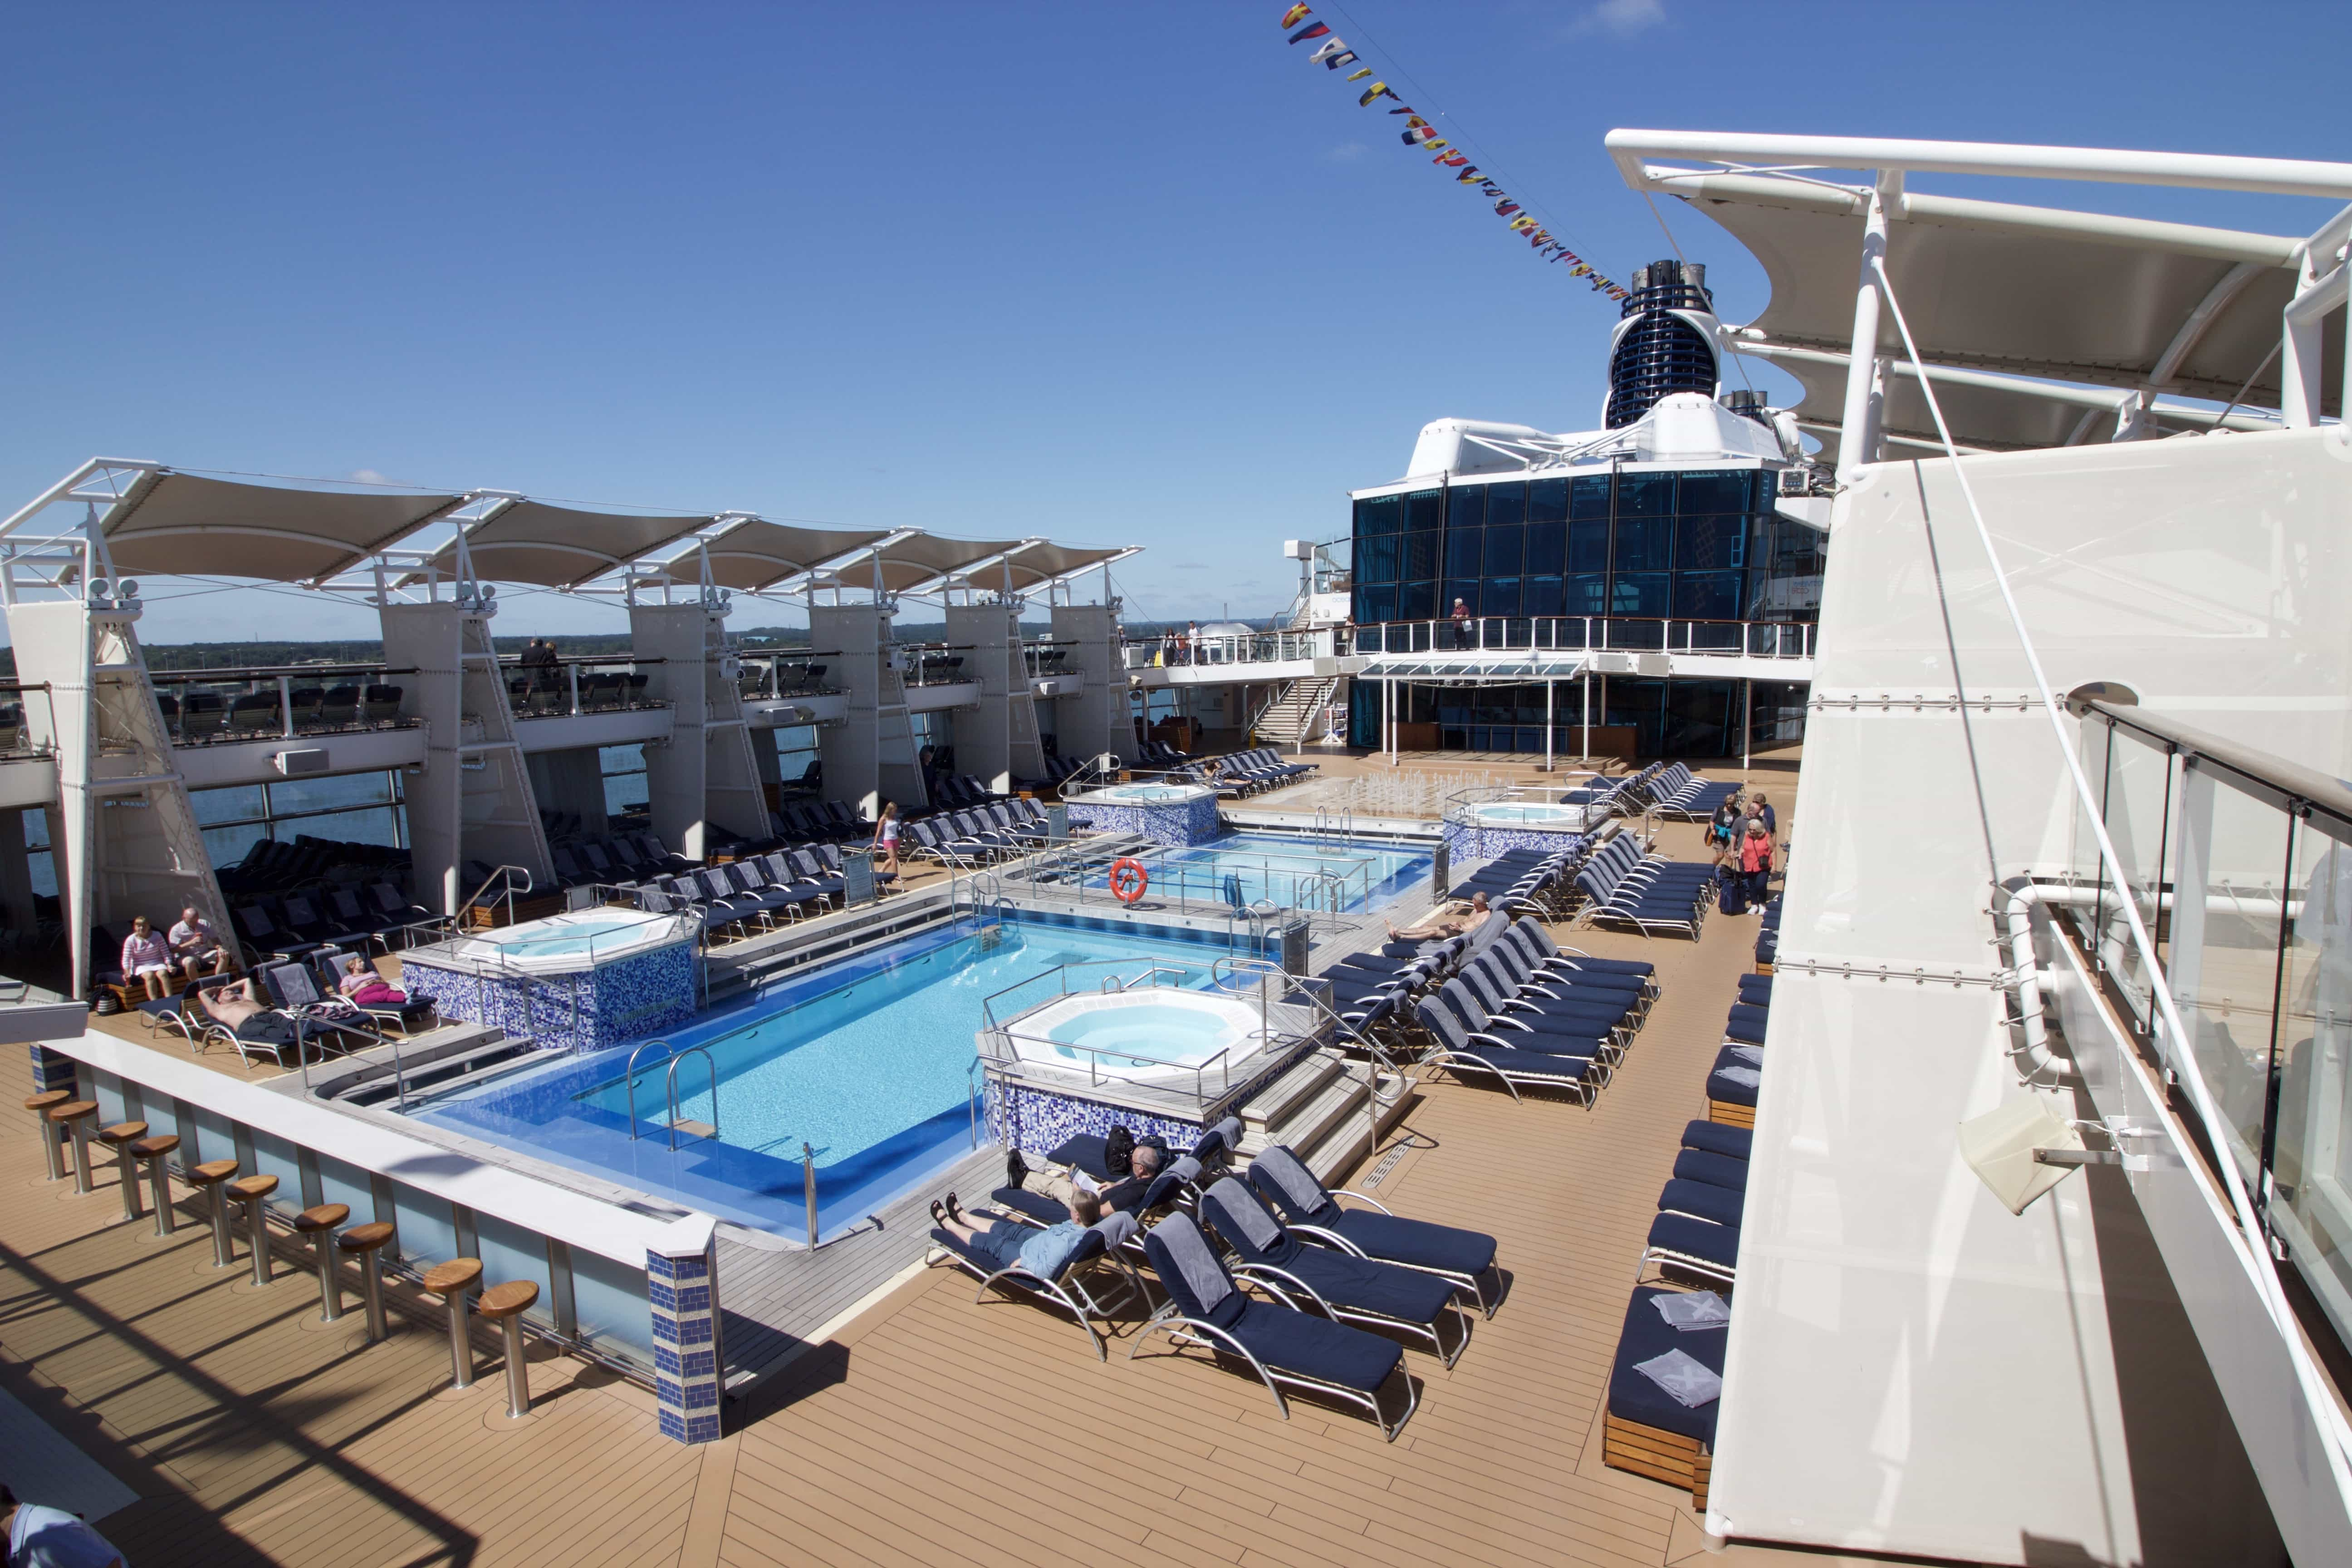 Celebrity Eclipse - Swimming pools deck sun beds sunbathing hot tubs